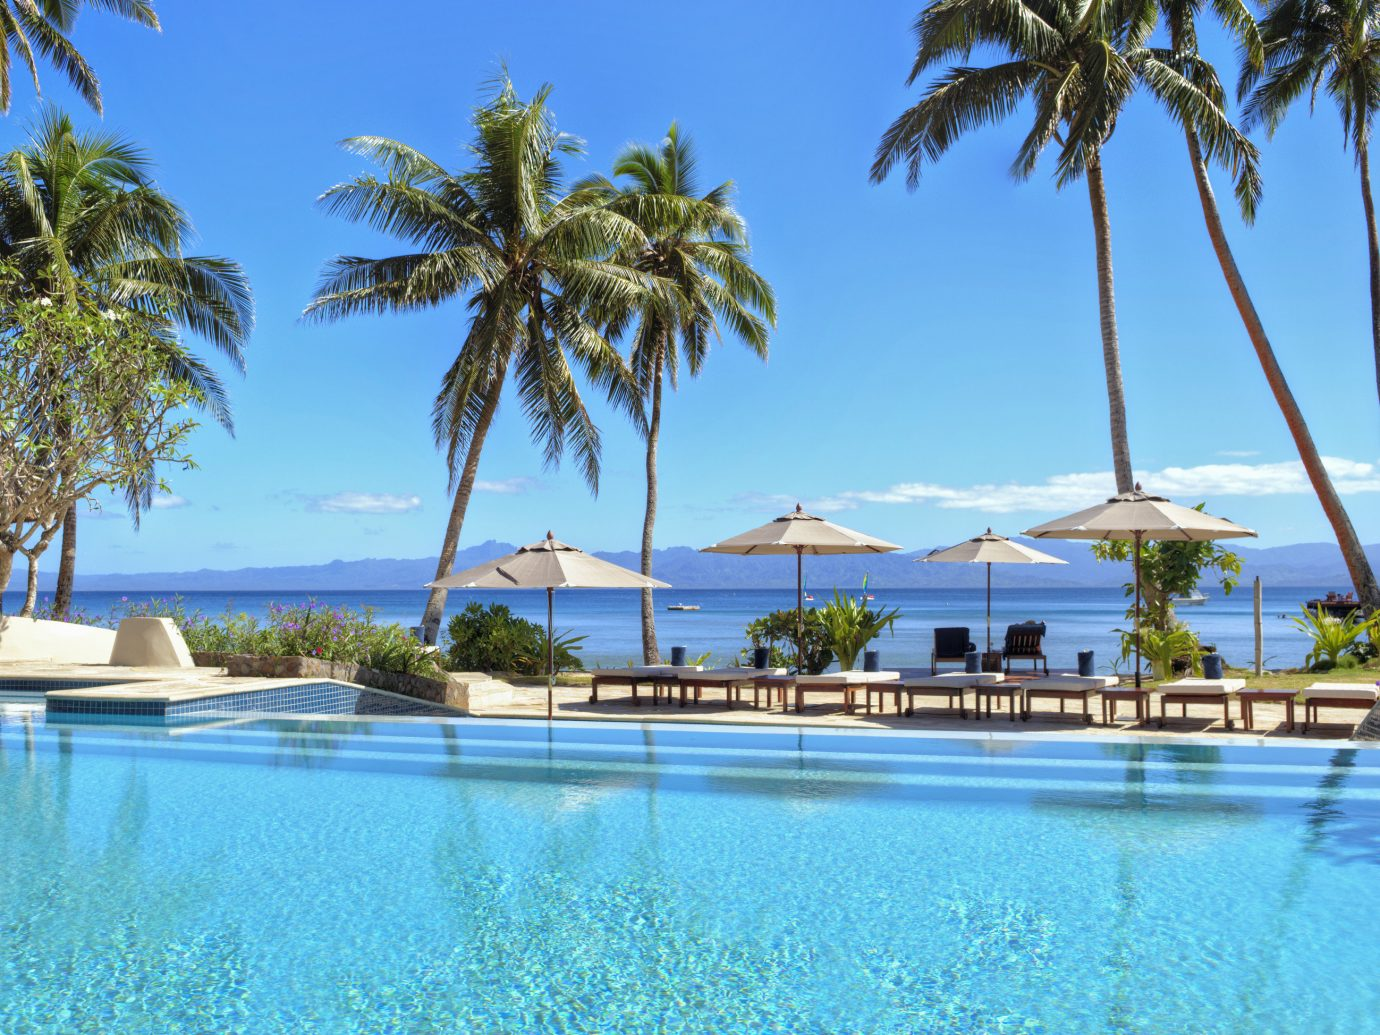 All-Inclusive Resorts Hotels Luxury Travel tree palm outdoor water sky Pool Resort Beach swimming pool property leisure resort town palm tree estate caribbean tropics real estate arecales vacation Villa Sea tourism bay hotel Lagoon plant swimming lined shore shade sandy surrounded